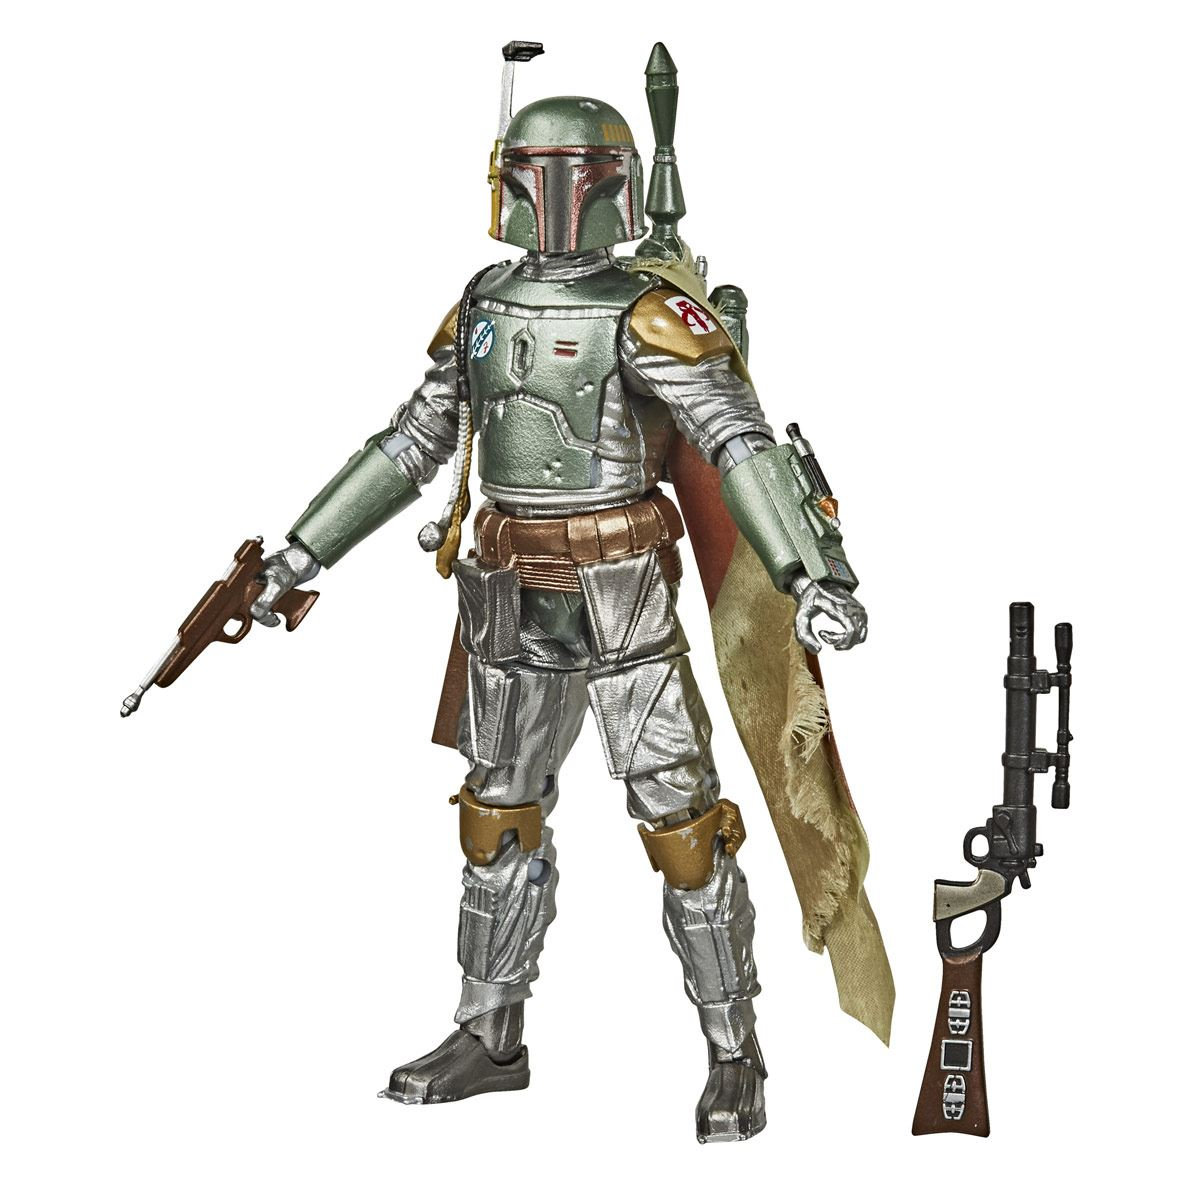 Star Wars The Black Series - Colección Grafito - Figura de Boba Fett a escala de 15 cm